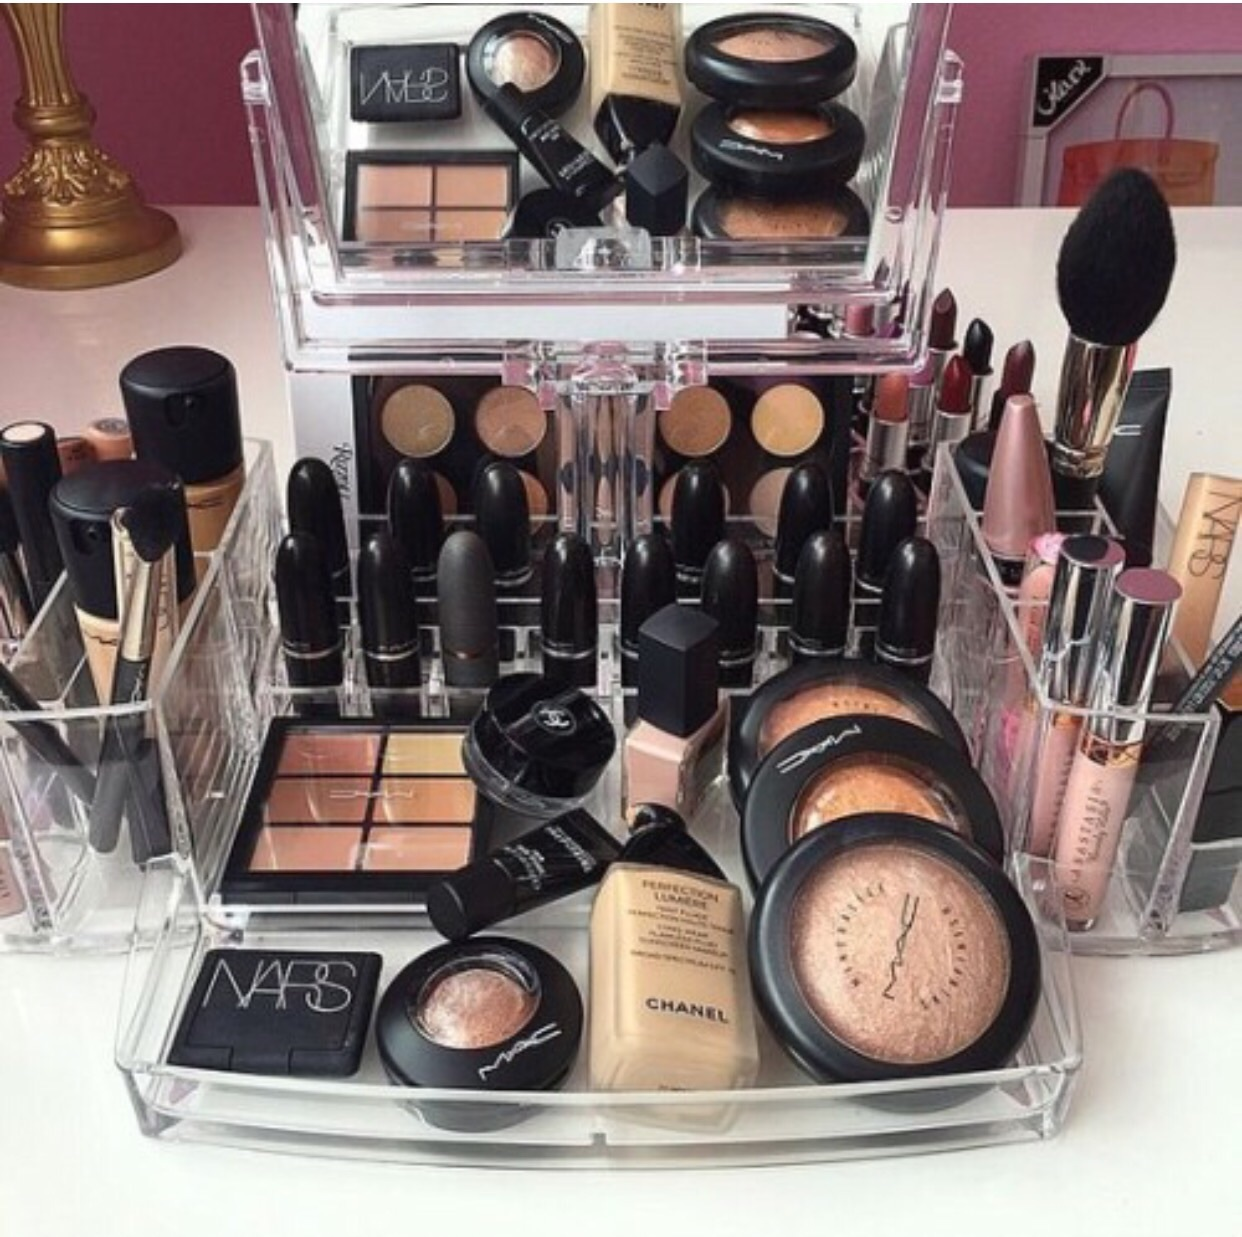 blush, brushes, concealer and cosmetics